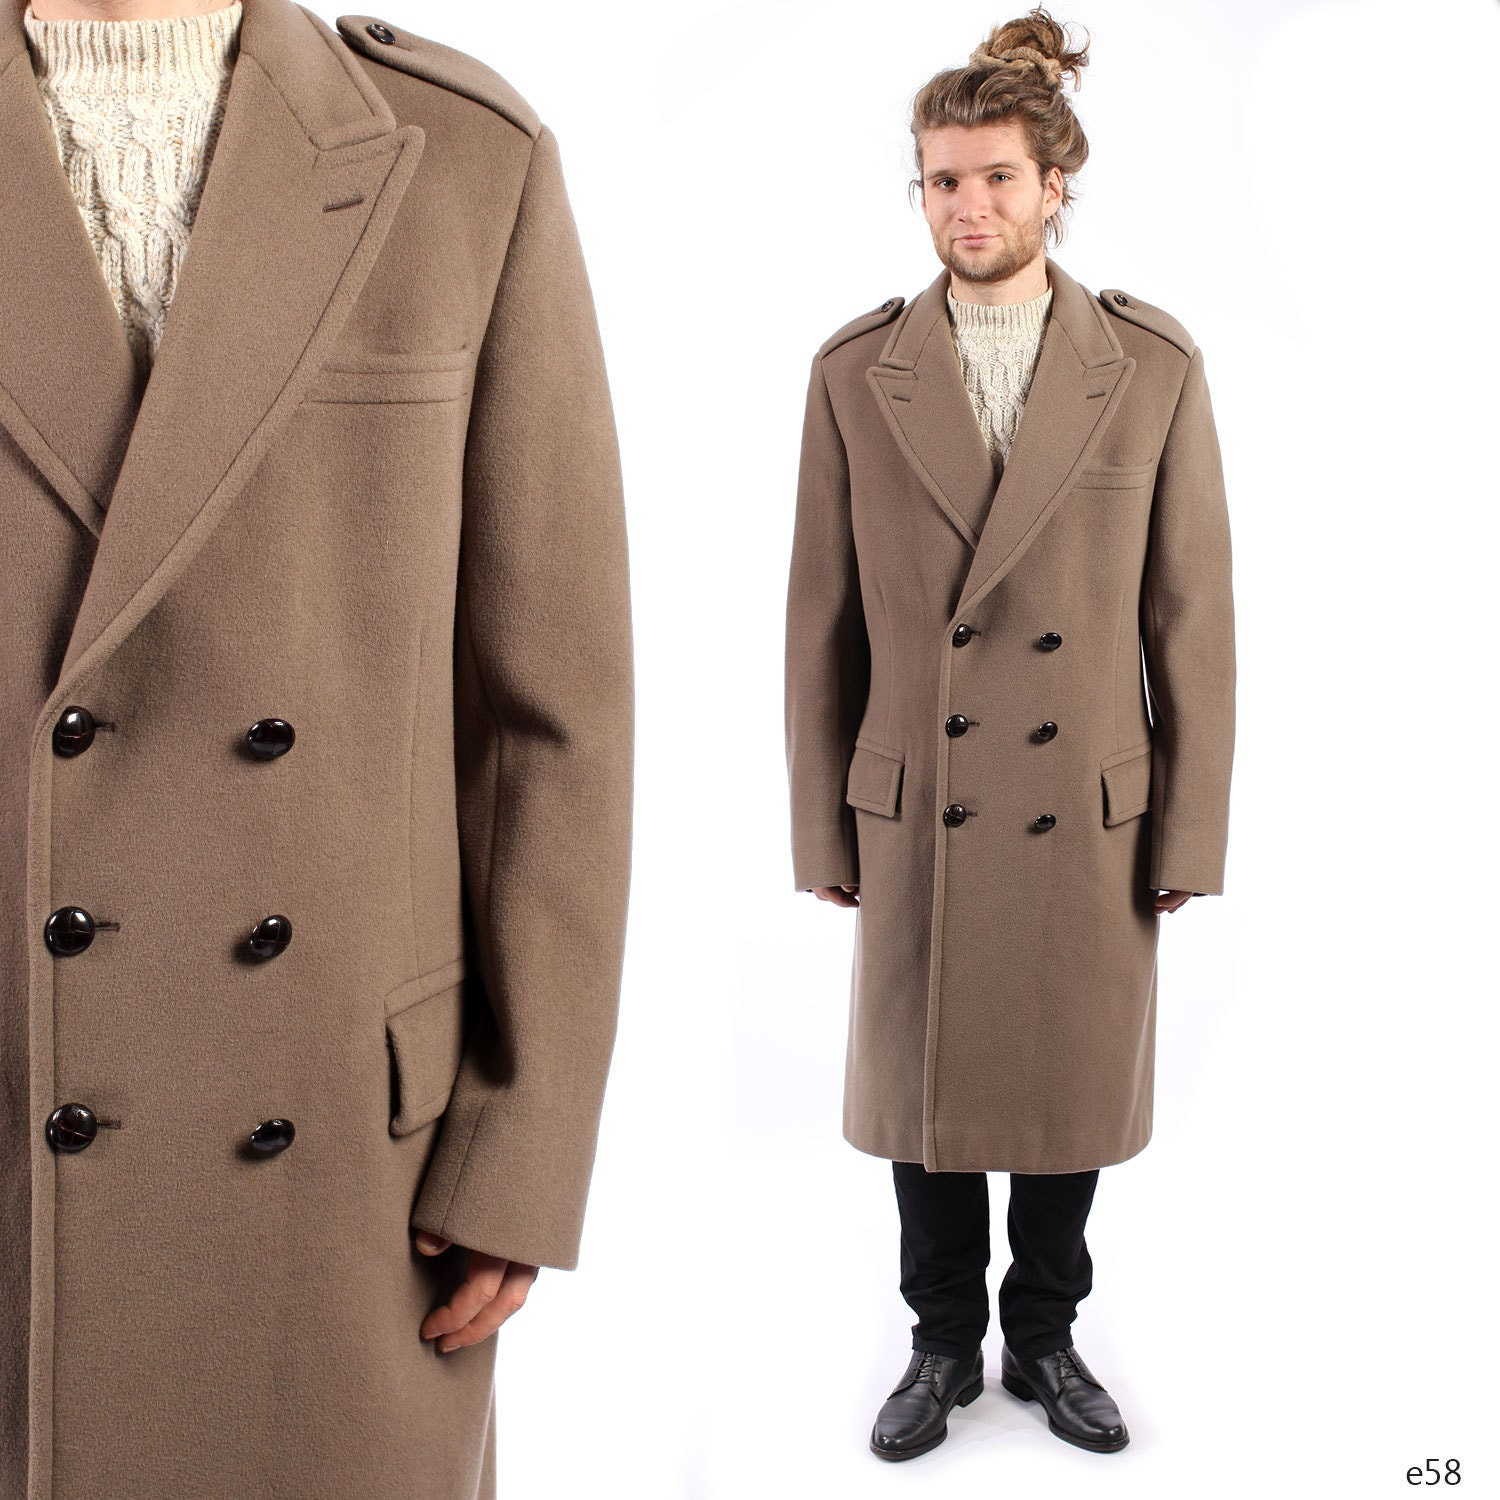 Shop the best trends of mens pea coats with offers seen no where else. Our double breasted and wool pea coats are fashionable here at truemfilesb5q.gq